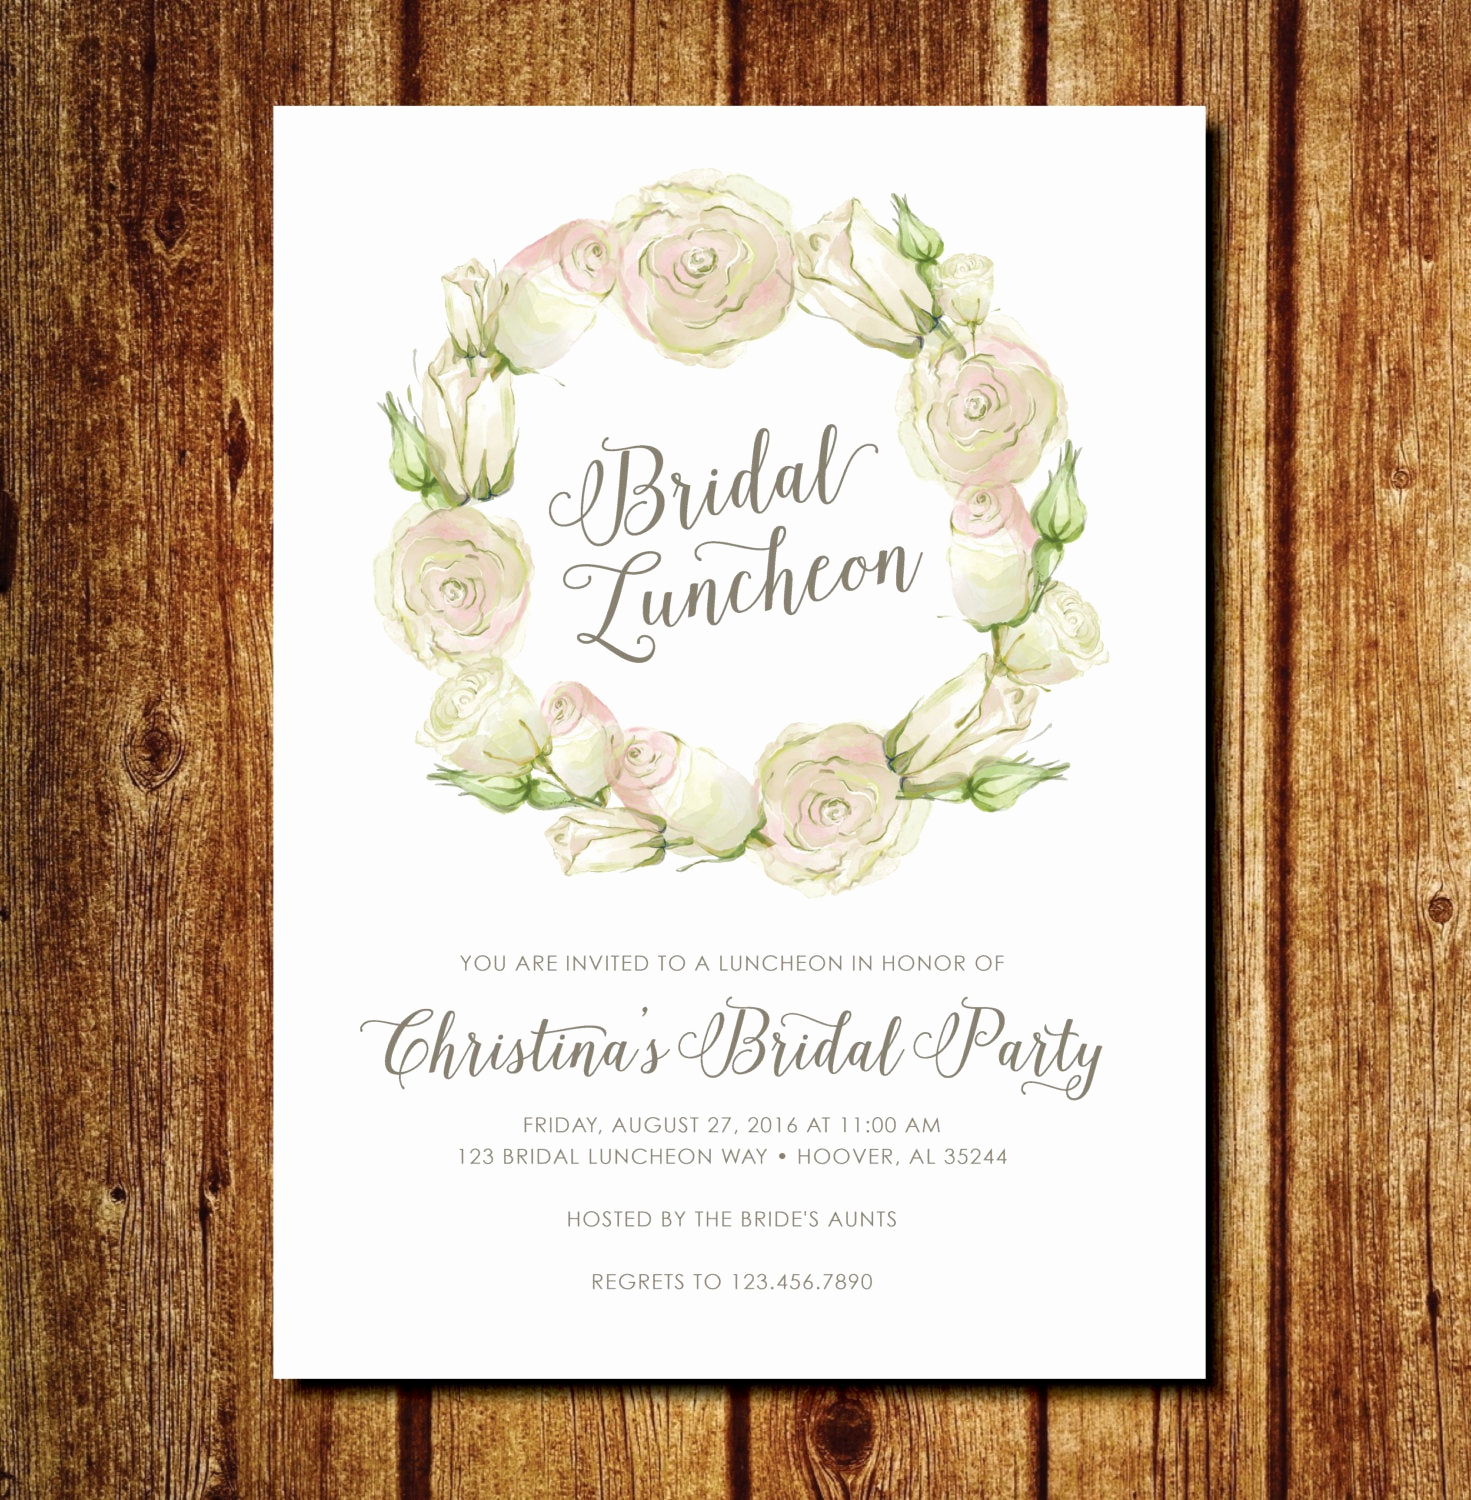 Bridal Brunch Invitation Wording Fresh Floral Bridal Luncheon Invitation